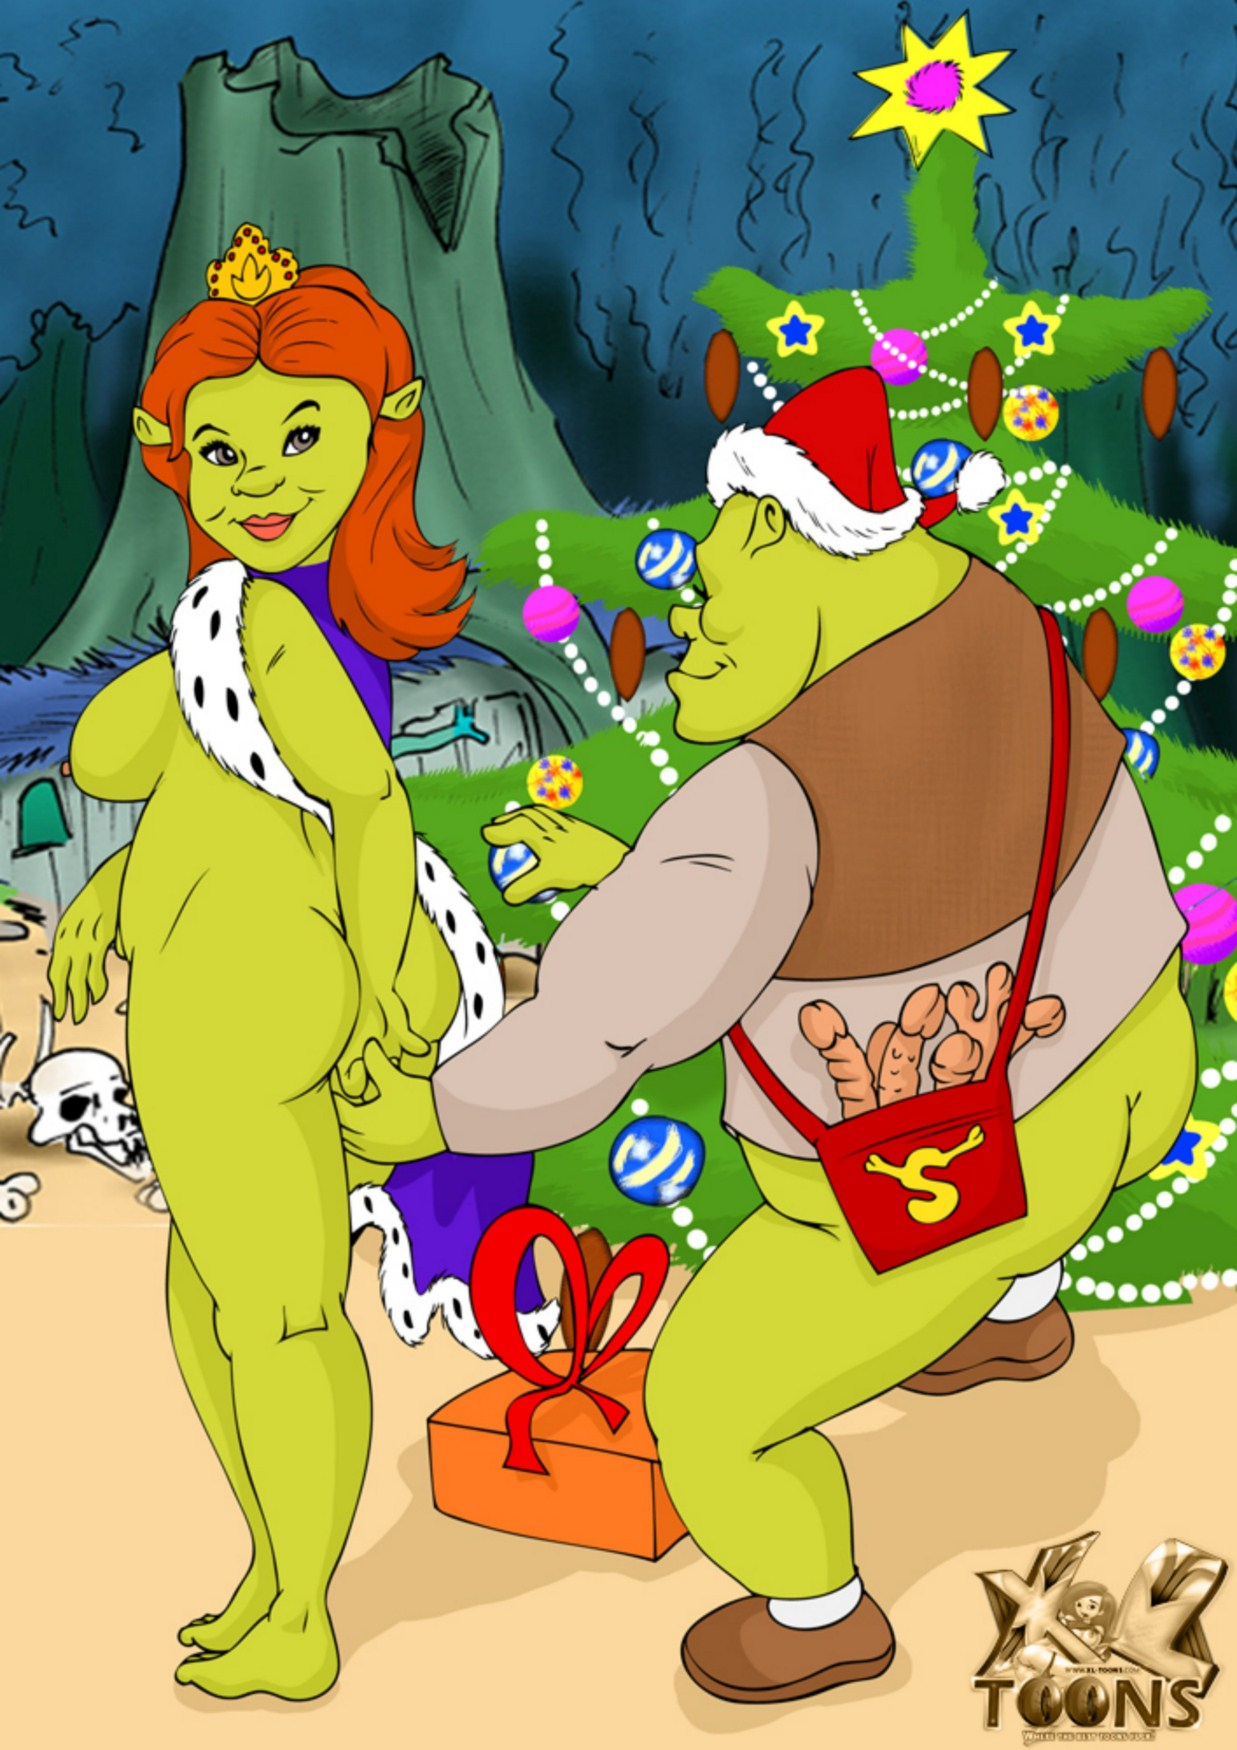 Shrek cartoon sex images cartoon streaming